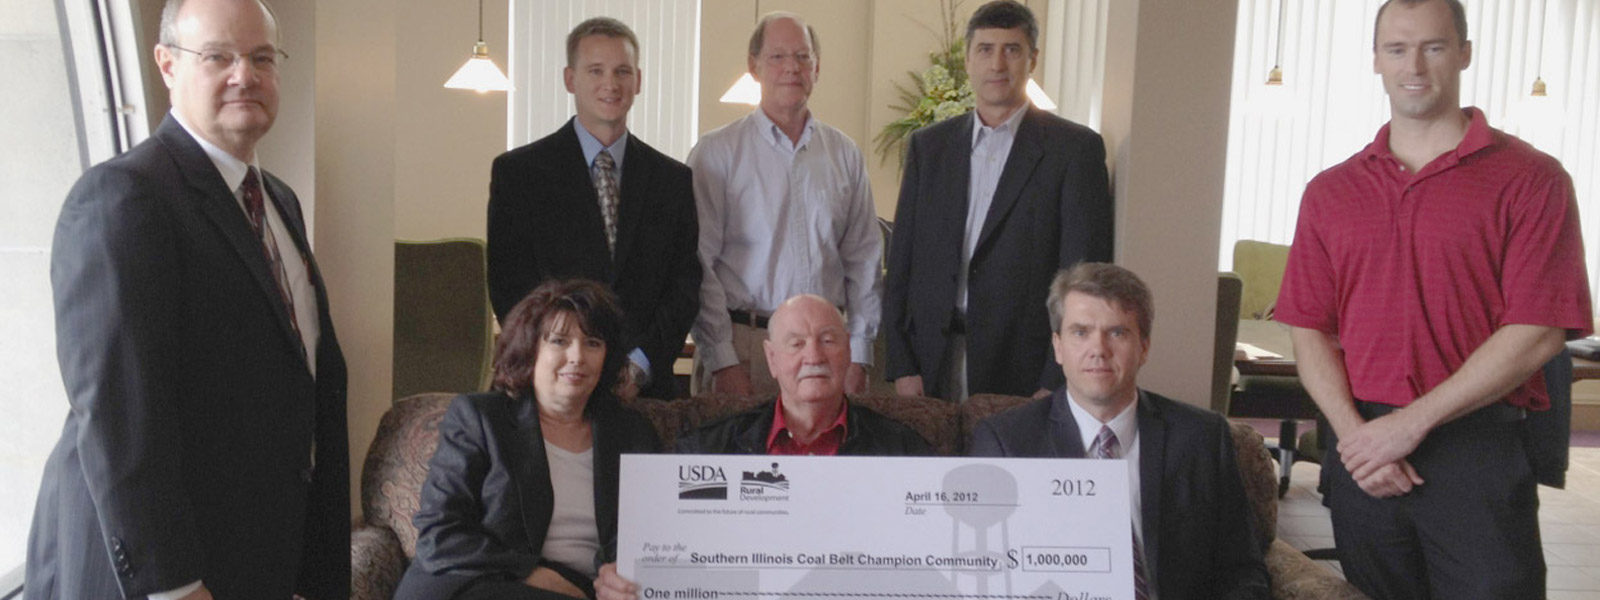 Champion Community Investments receives $1 million loan from USDA Rural Development